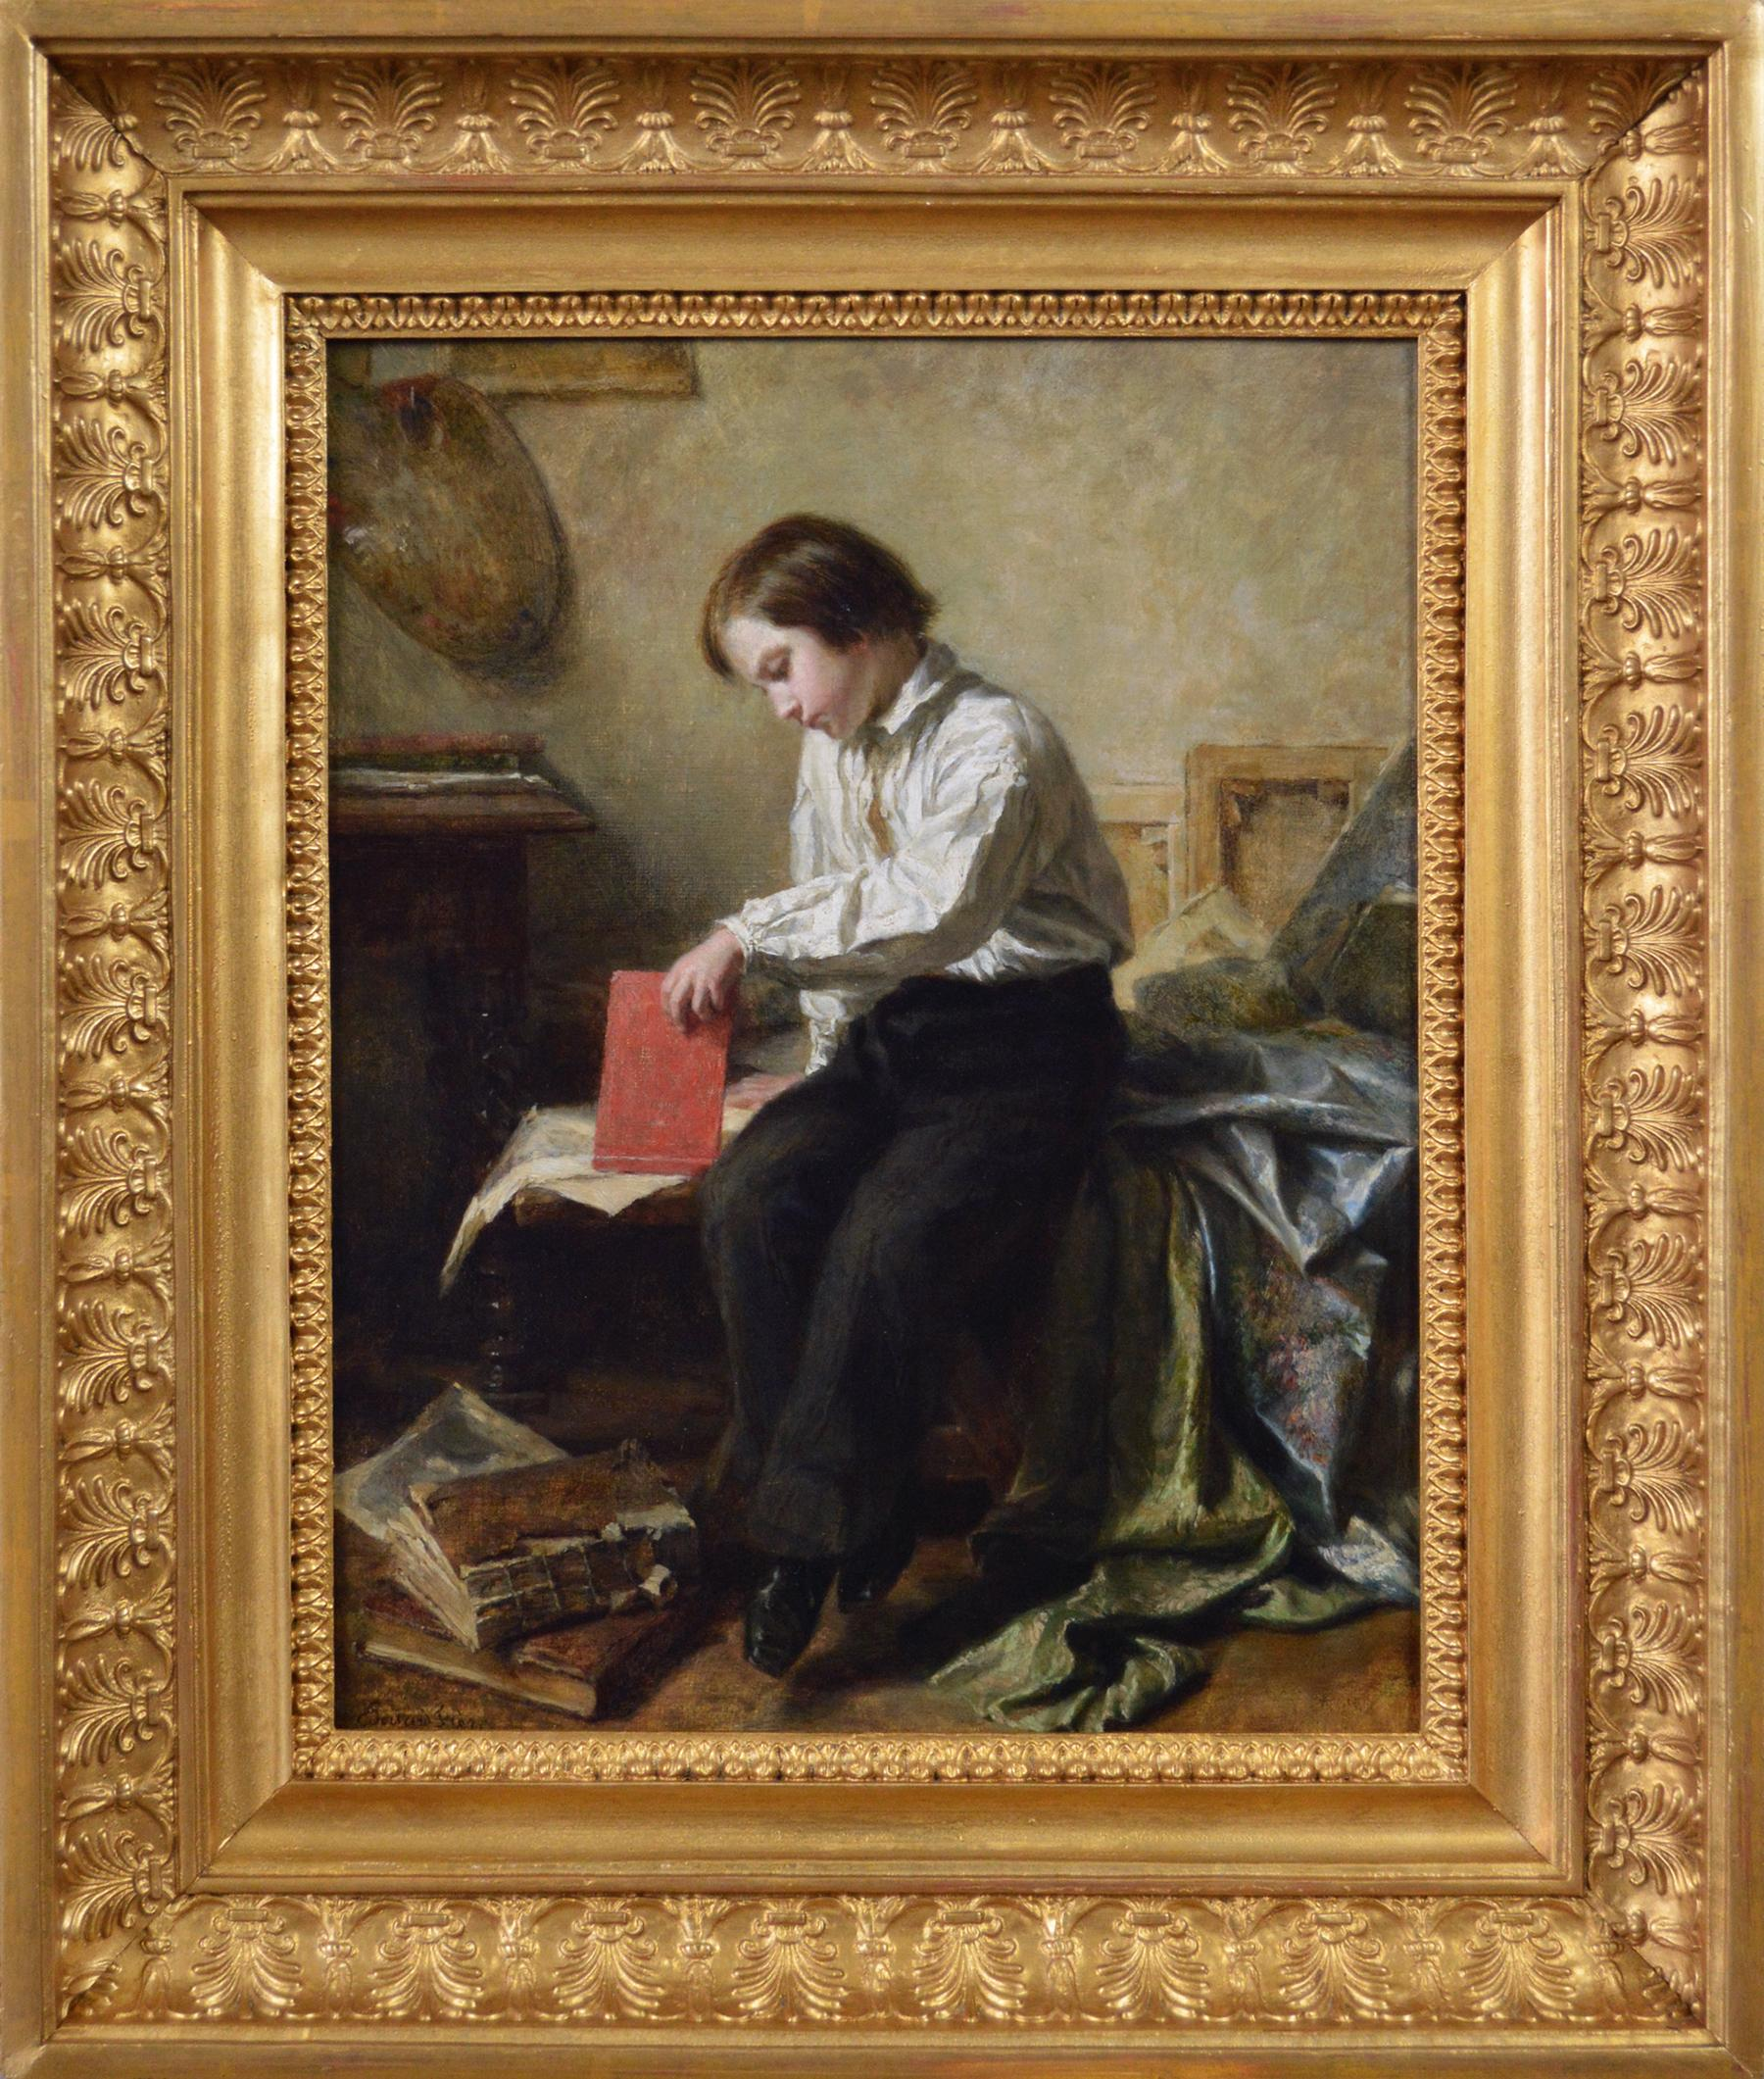 19th Century genre oil painting of a boy in an attic